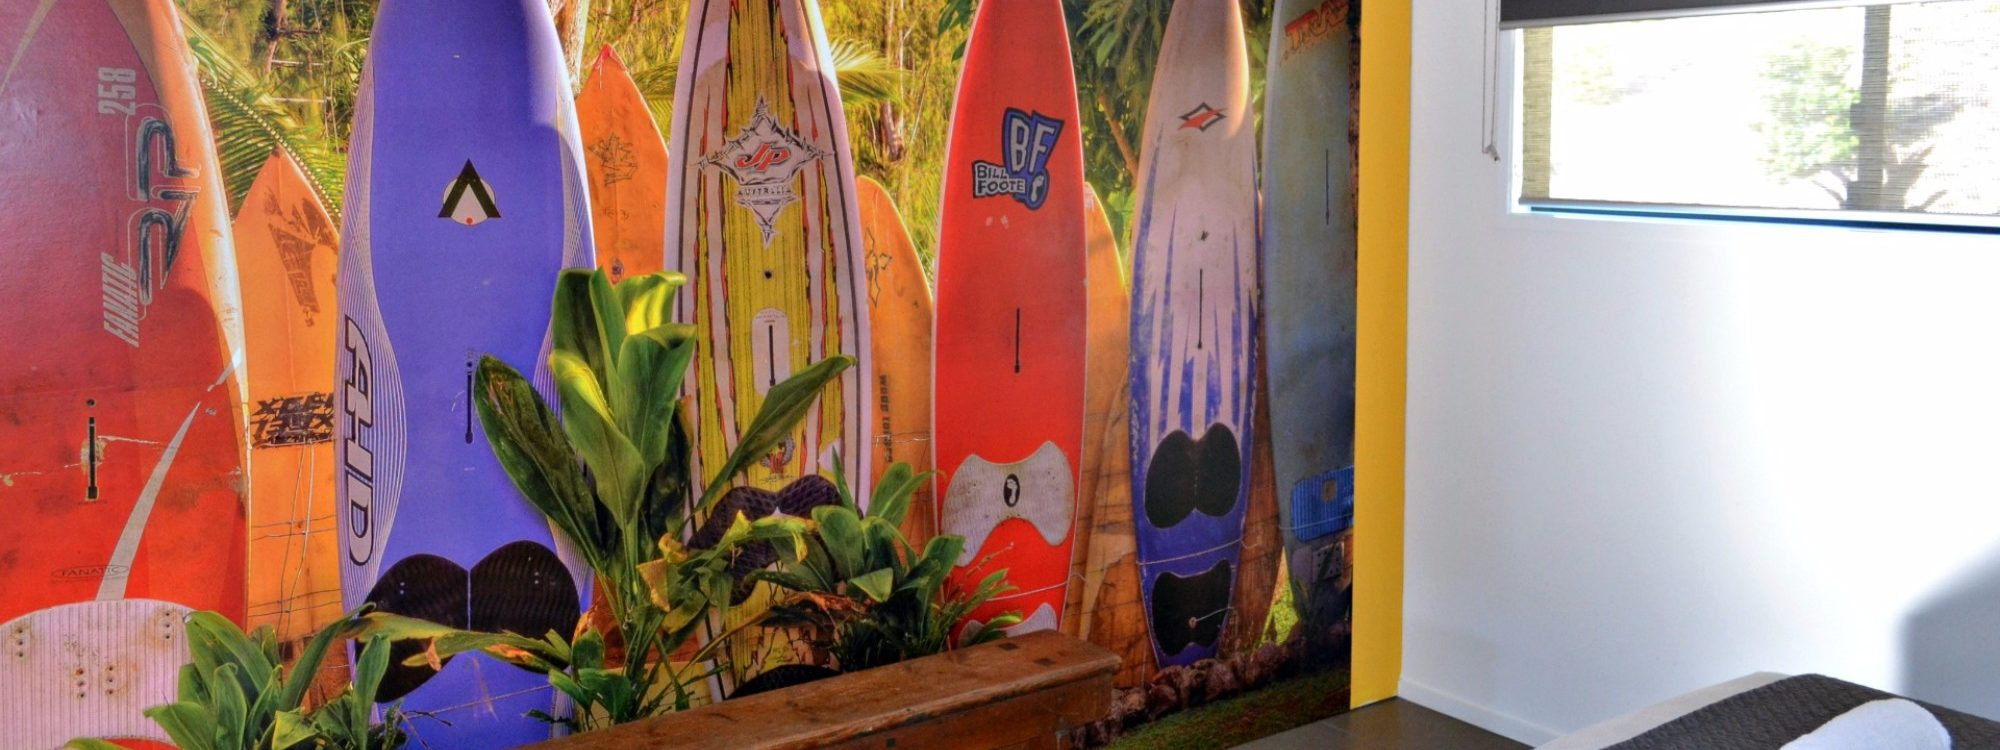 The Retreat pavilion features a giant surf mural opposite the 2 King Single beds.